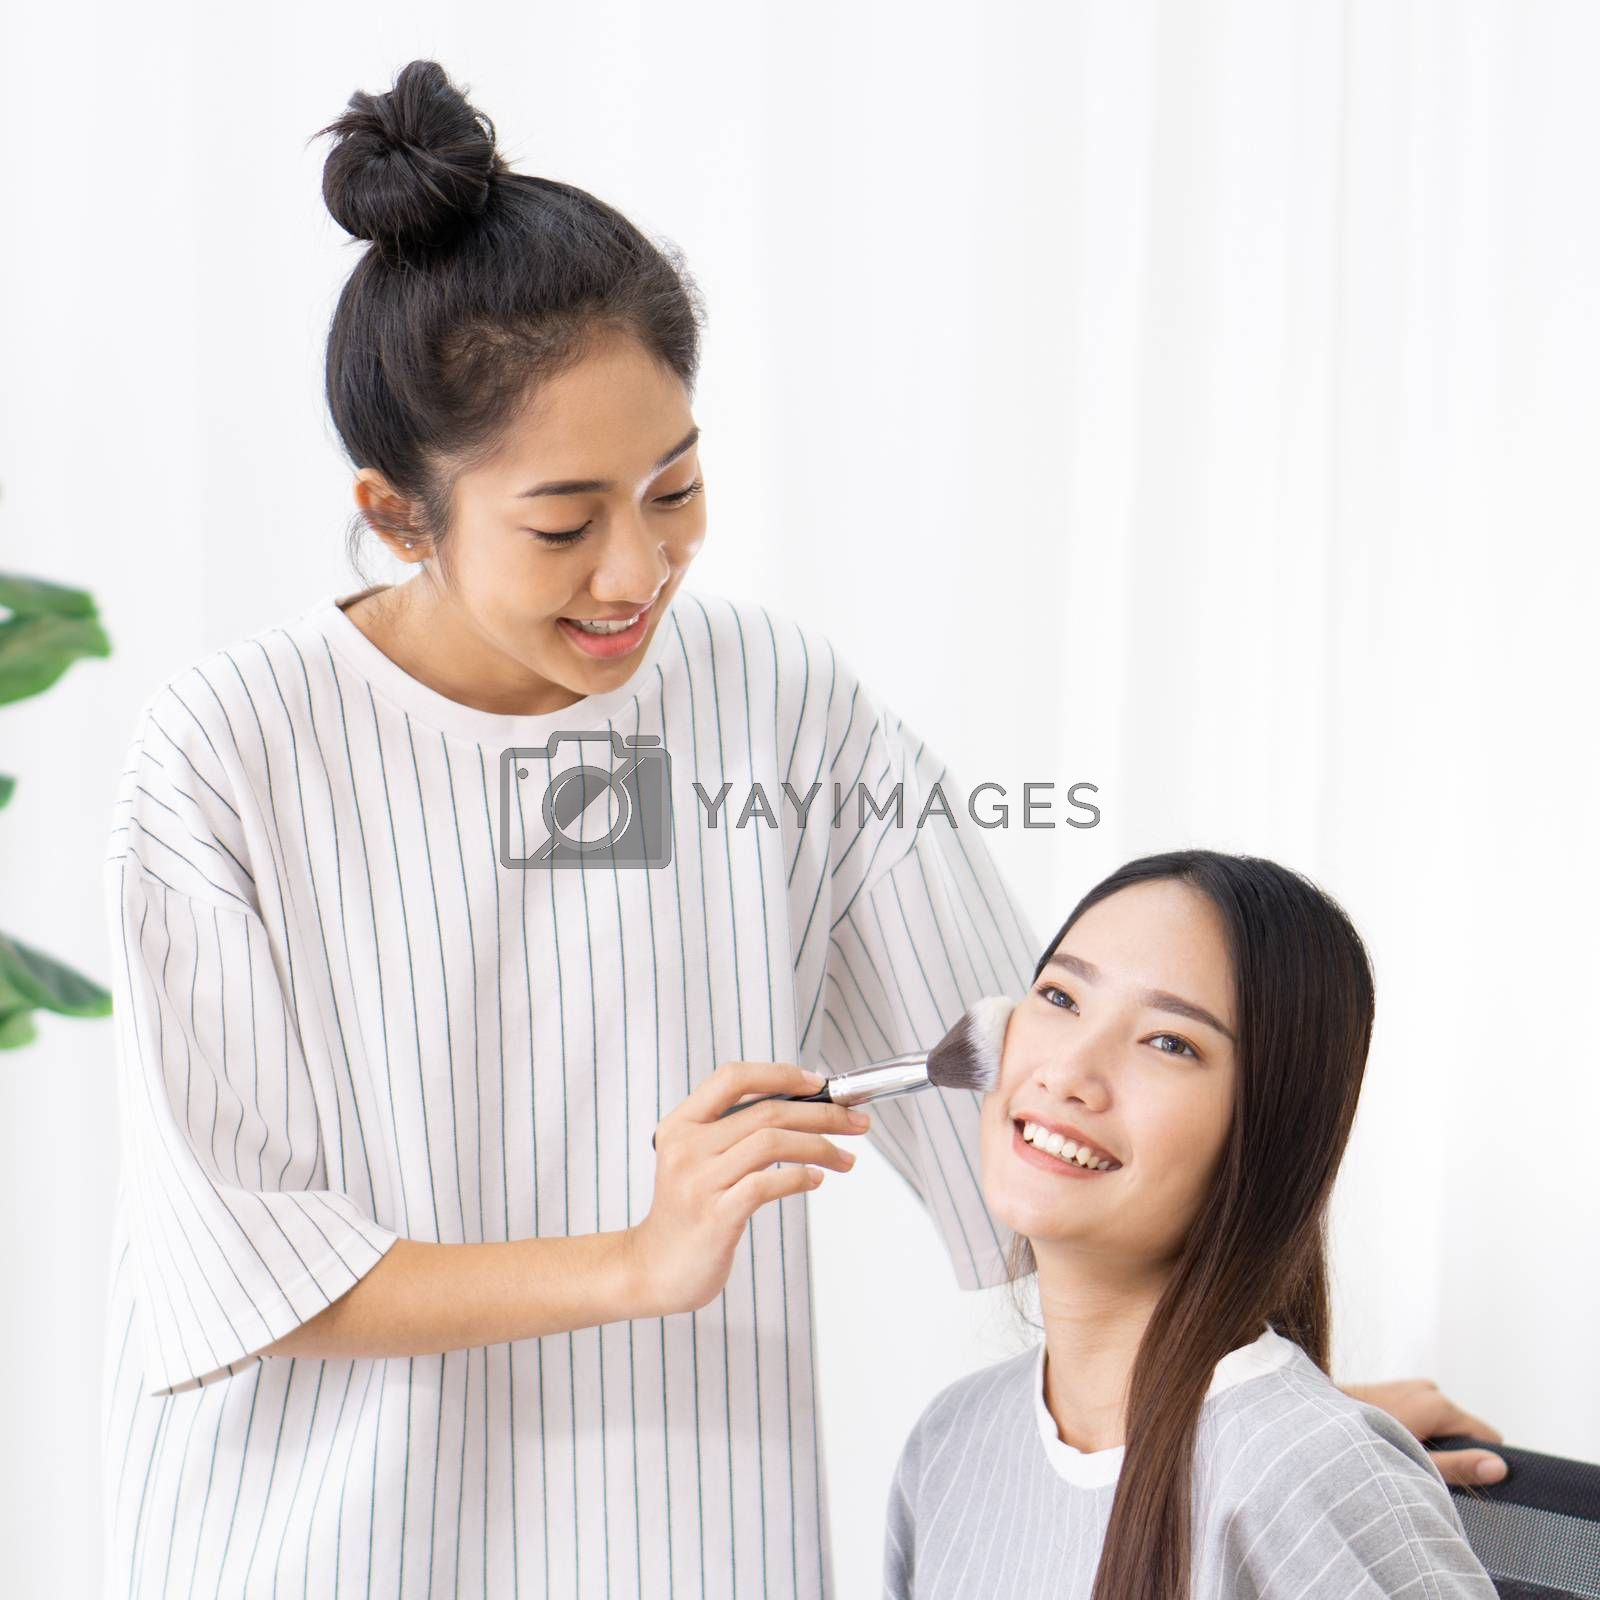 Roommates have fun learning to make-up for asian friends.